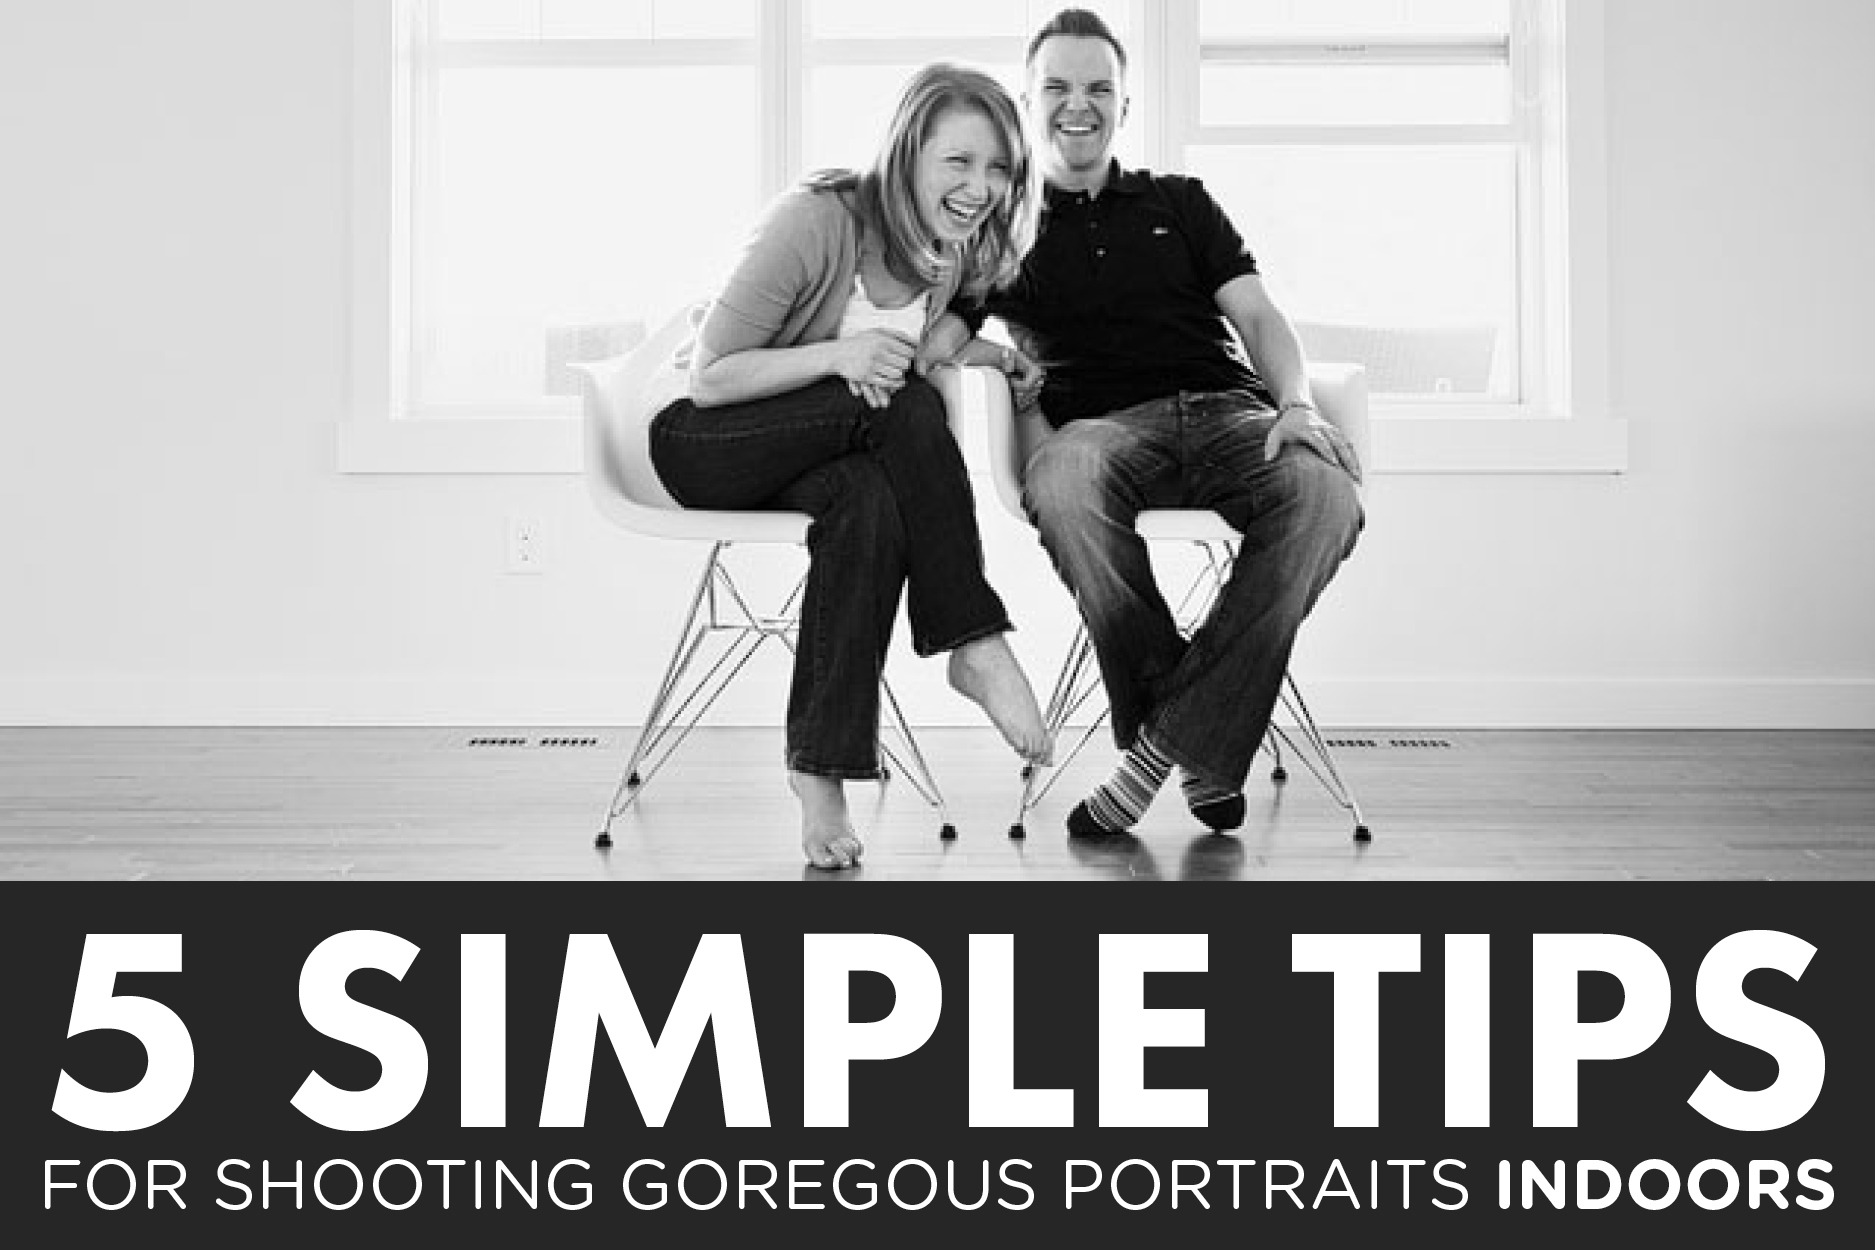 5 simple tips for shooting gorgeous portraits indoors